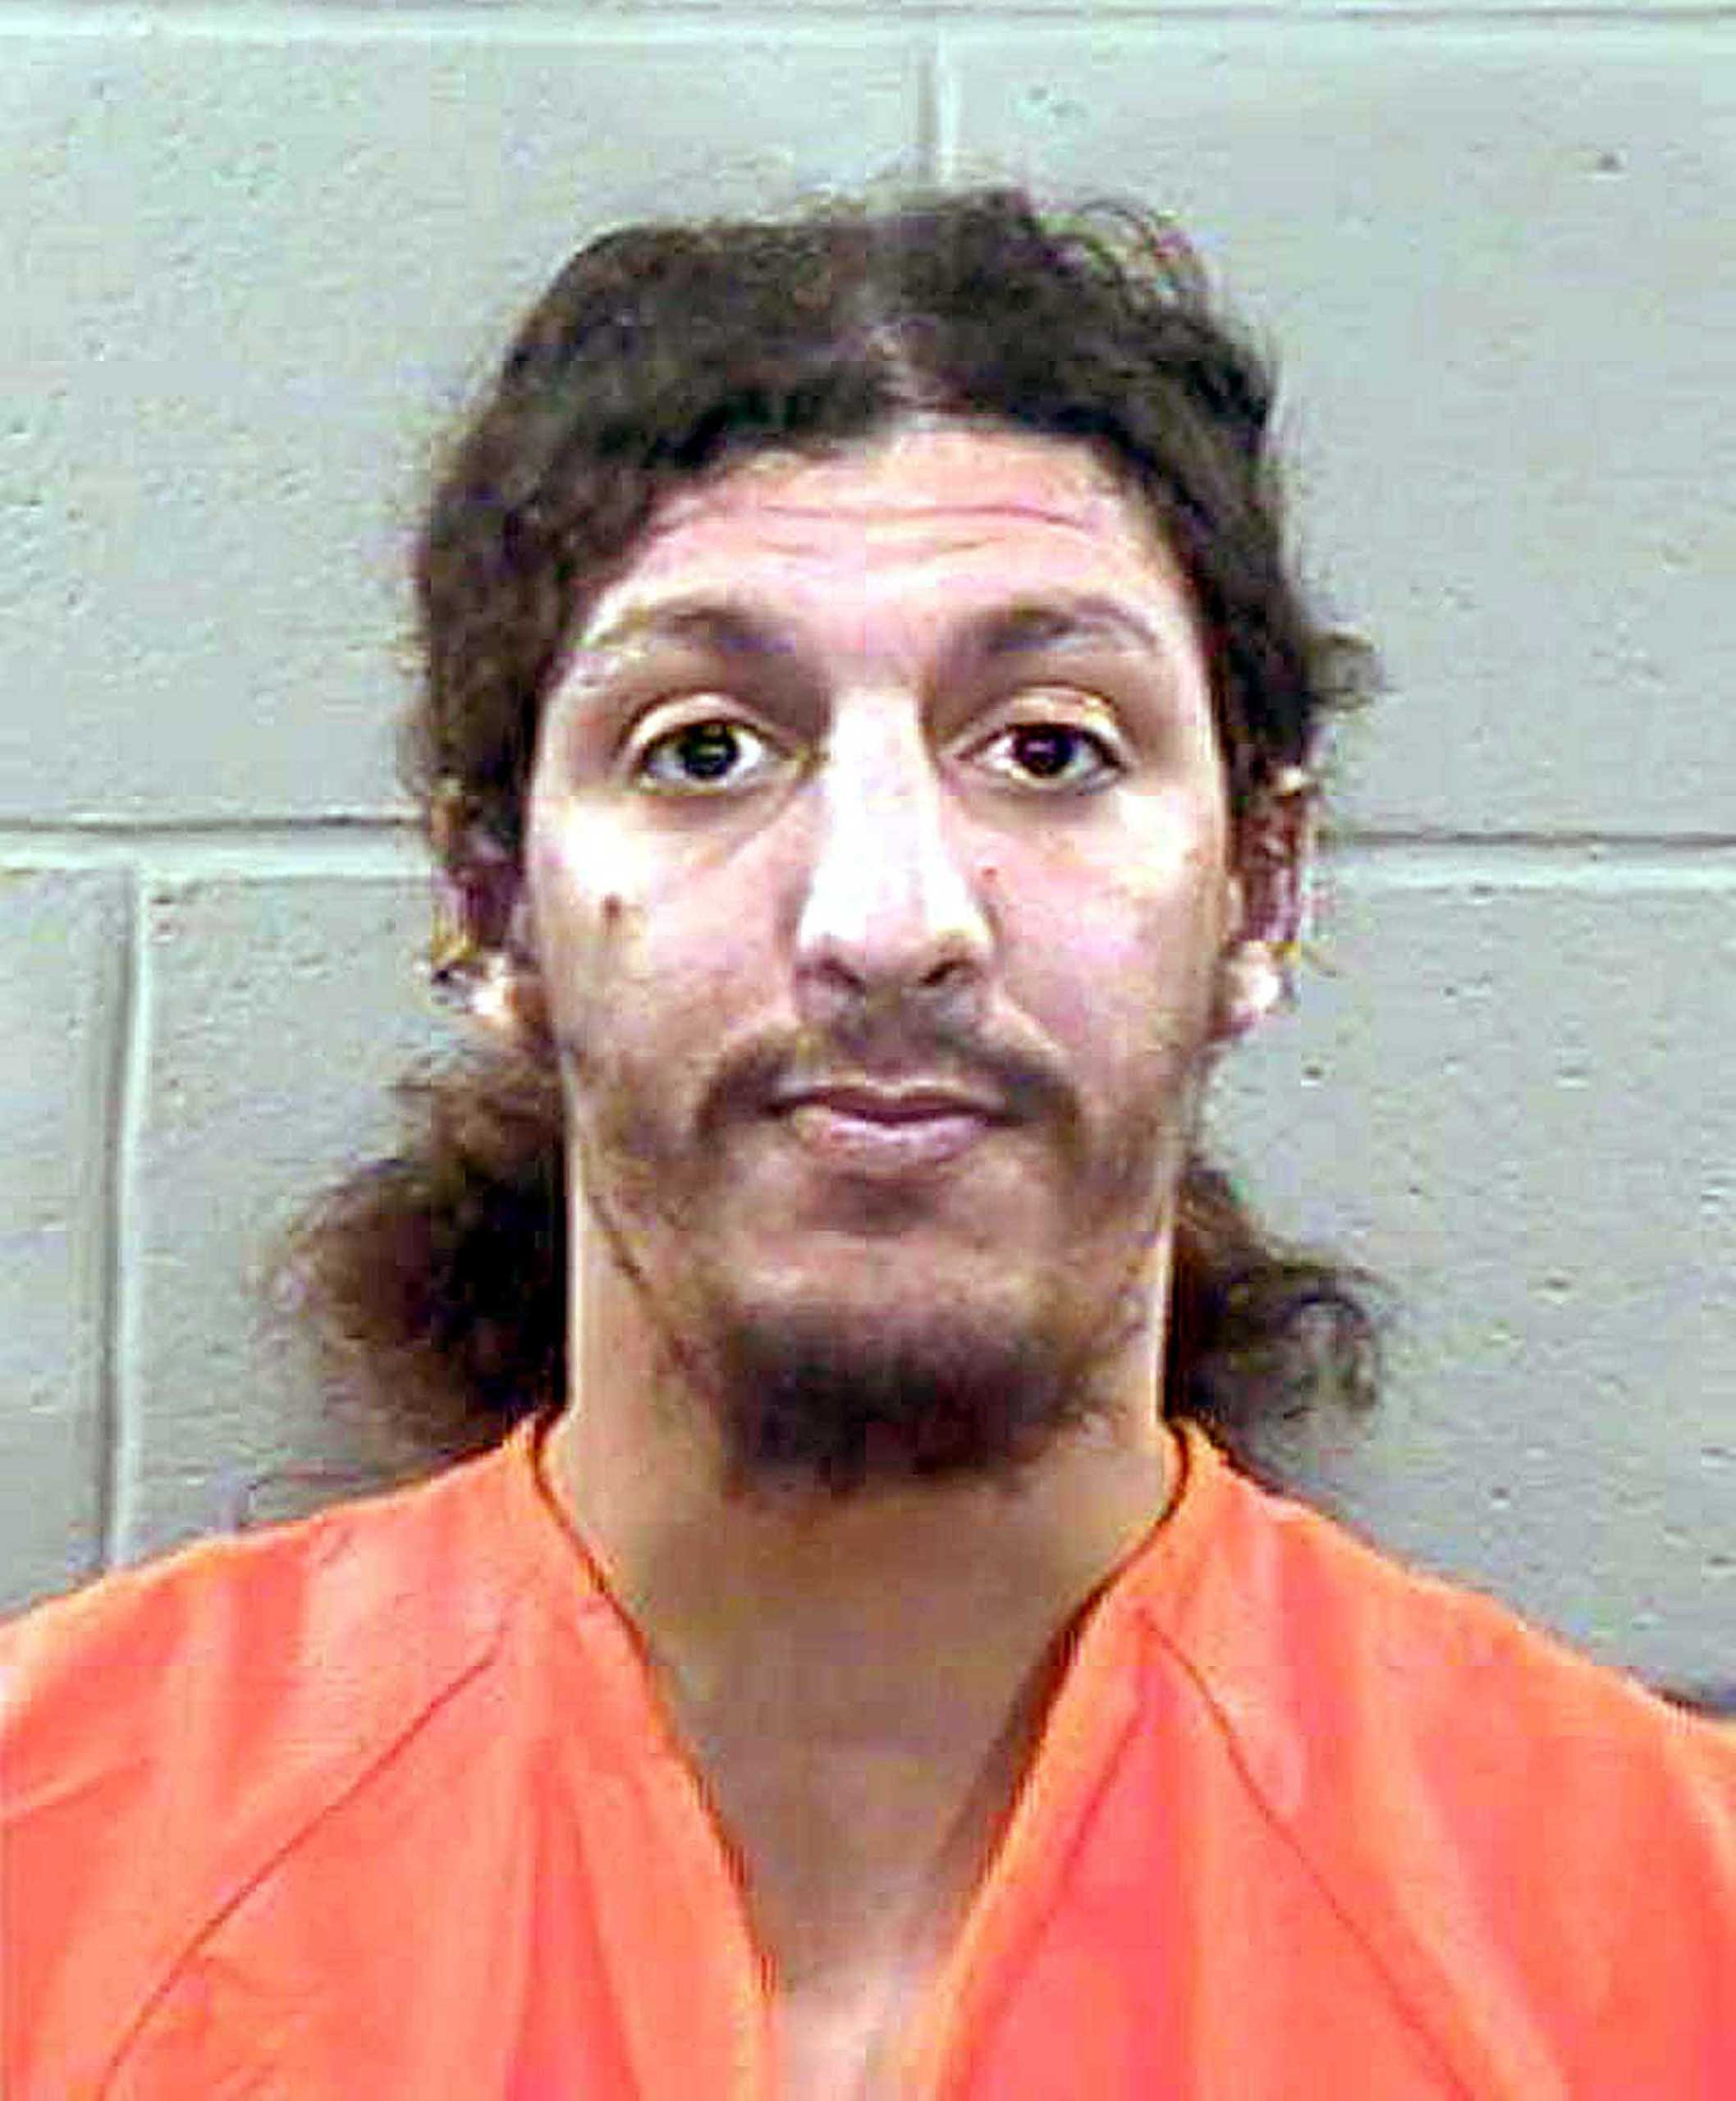 Richard Reid, the British citizen accused of trying to blow up an aircraft with explosives in his shoes, is shown in this December, 2001 police photograph.